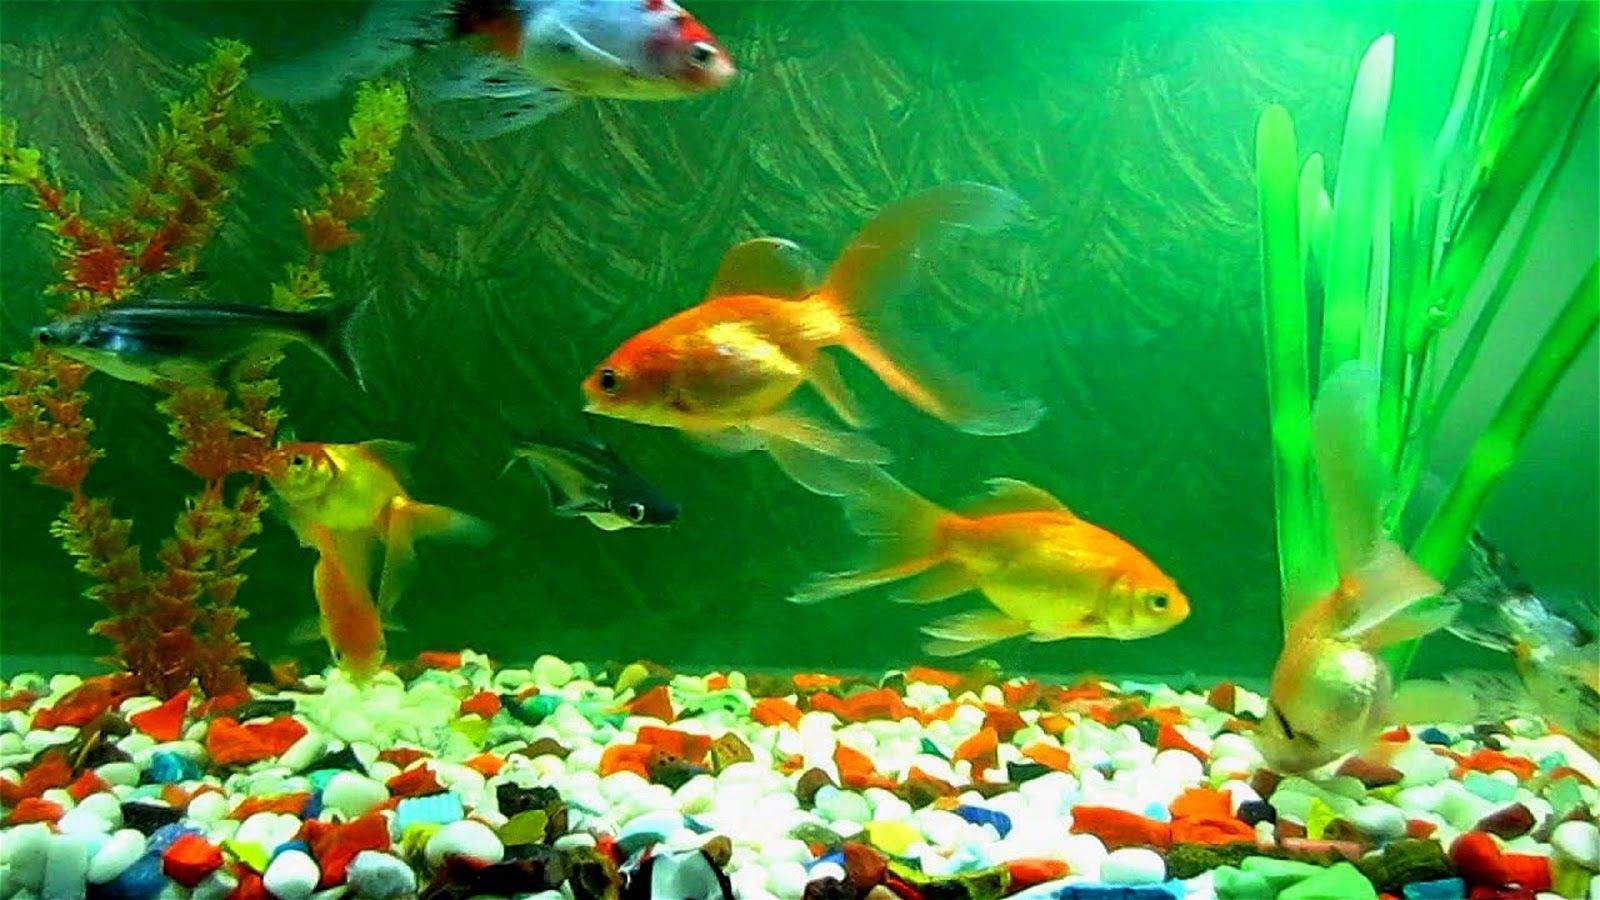 Fish aquarium live wallpaper - Get Free Aquariums Live Wallpaper Google Playstore Click Here To Download Apps